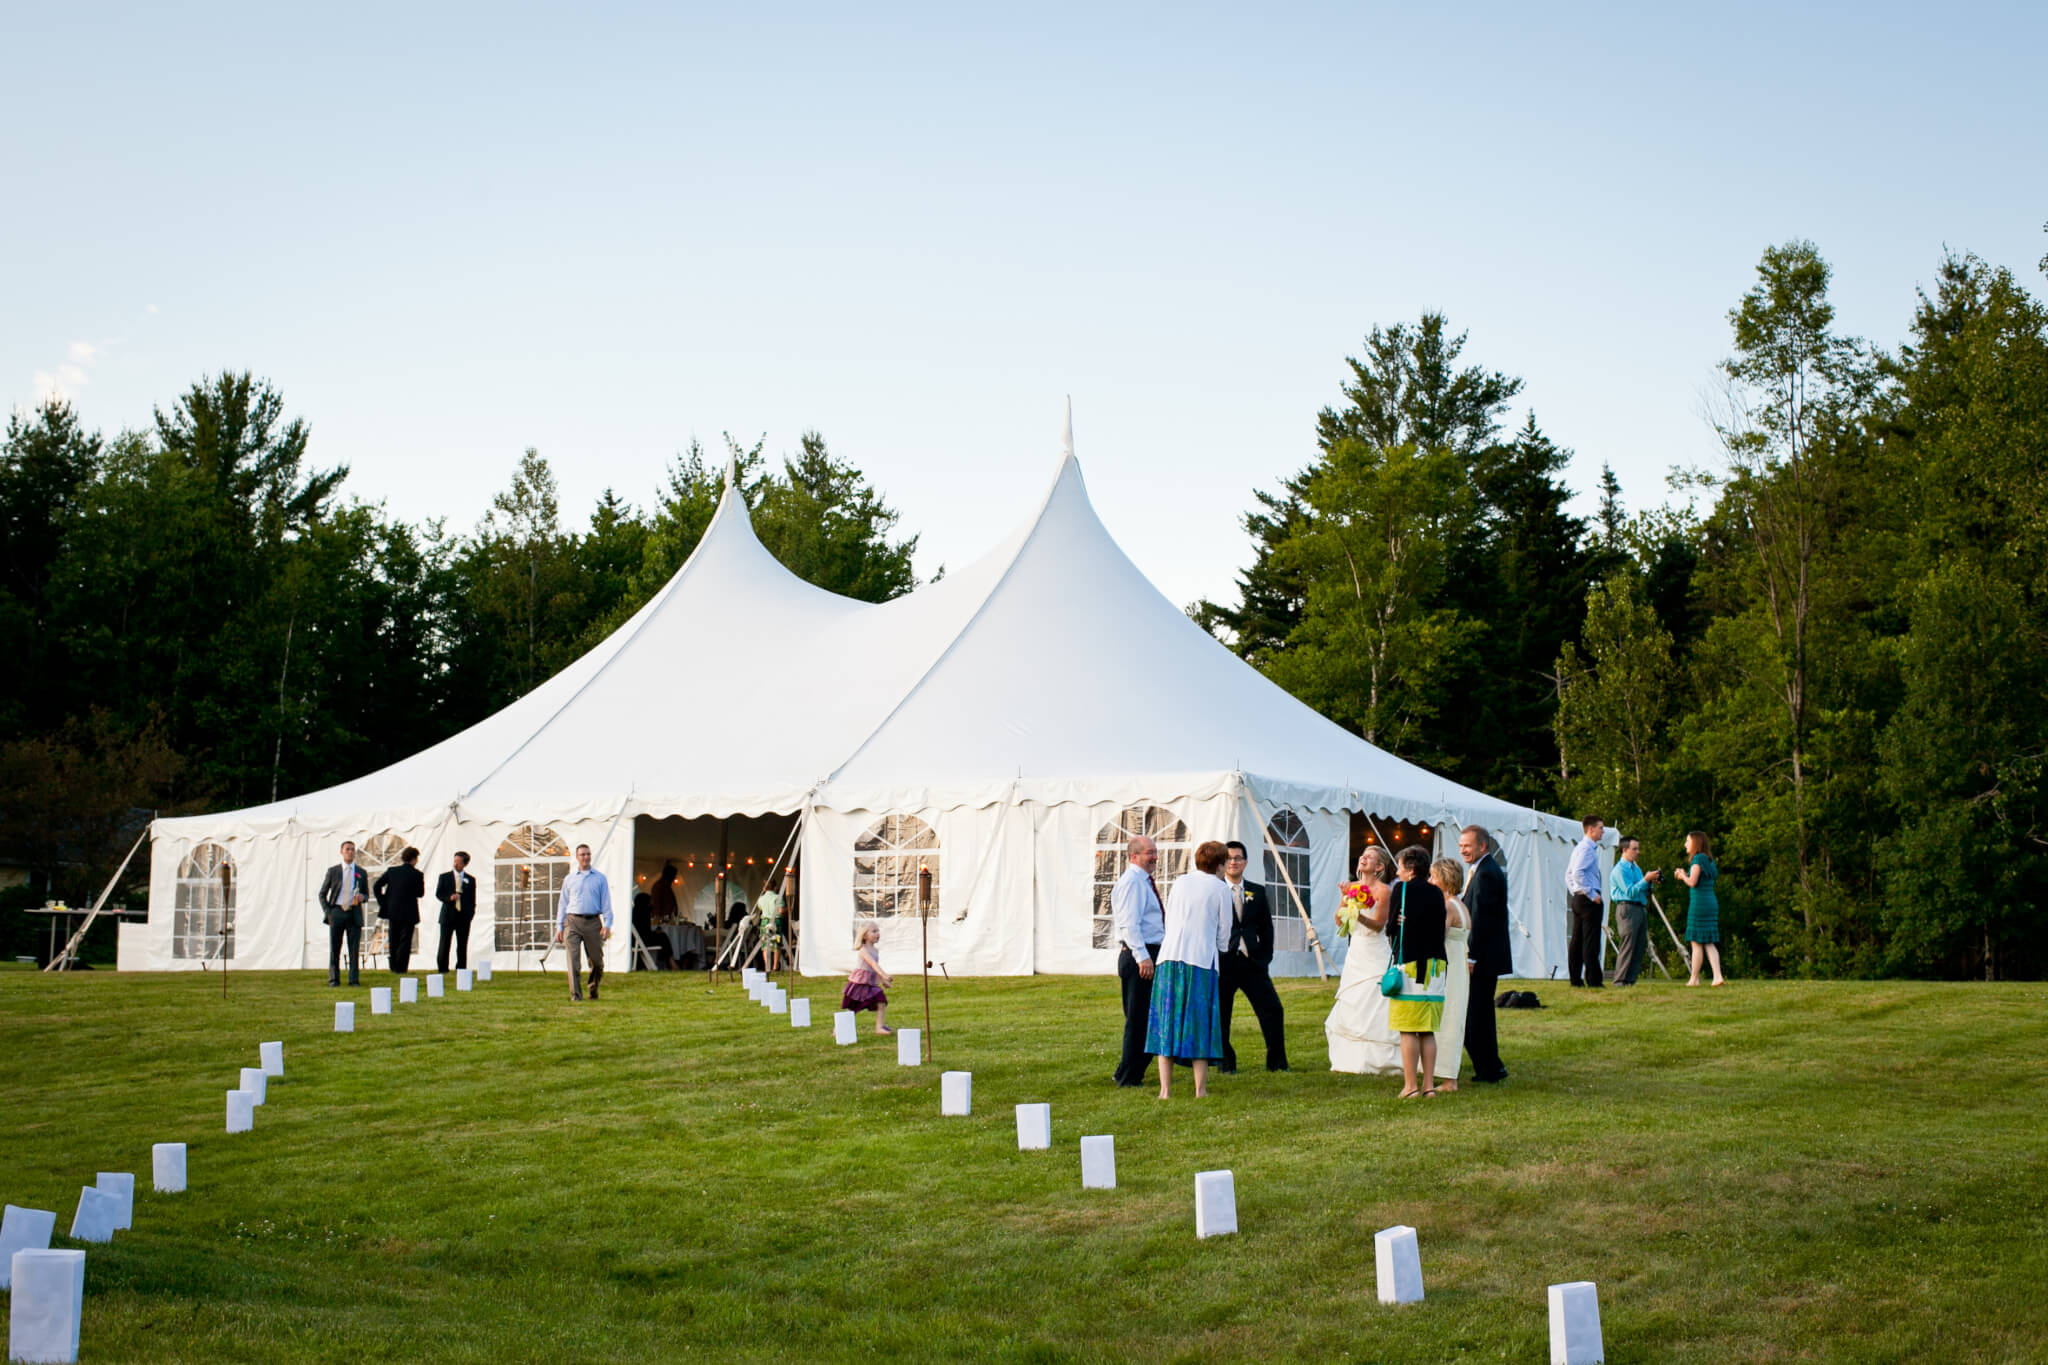 Rusty and Karin are wed at the Red Clover inn in Killington, Vermont. By Eve Event Photography